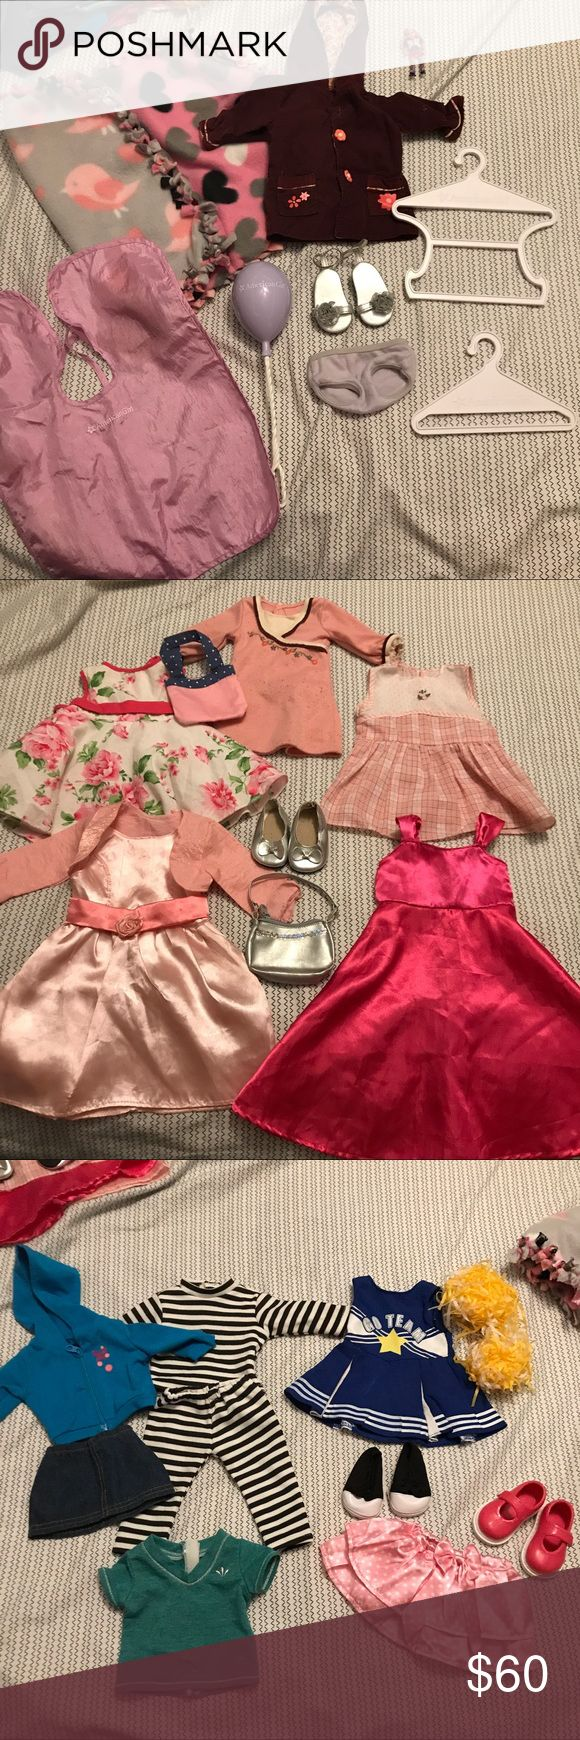 American Girl Doll Clothes and Accessories ♡condition - Good and fair ♡features - Full list of flaws at the bottom 2 pics. The first pic is ag brand stuff, last 3 are battat, fibrecraft, sophia's and dress me up branded. all fit AG size dolls. ♡prices always negotiable ♡all items are cross-posted so grab them fast ♡tags - aesthetic alien grunge vintage 90s dream reality cute kawaii harajuku jfashion japanese fashion american spring summer sun skirt dress short wedding floral trendy boho…